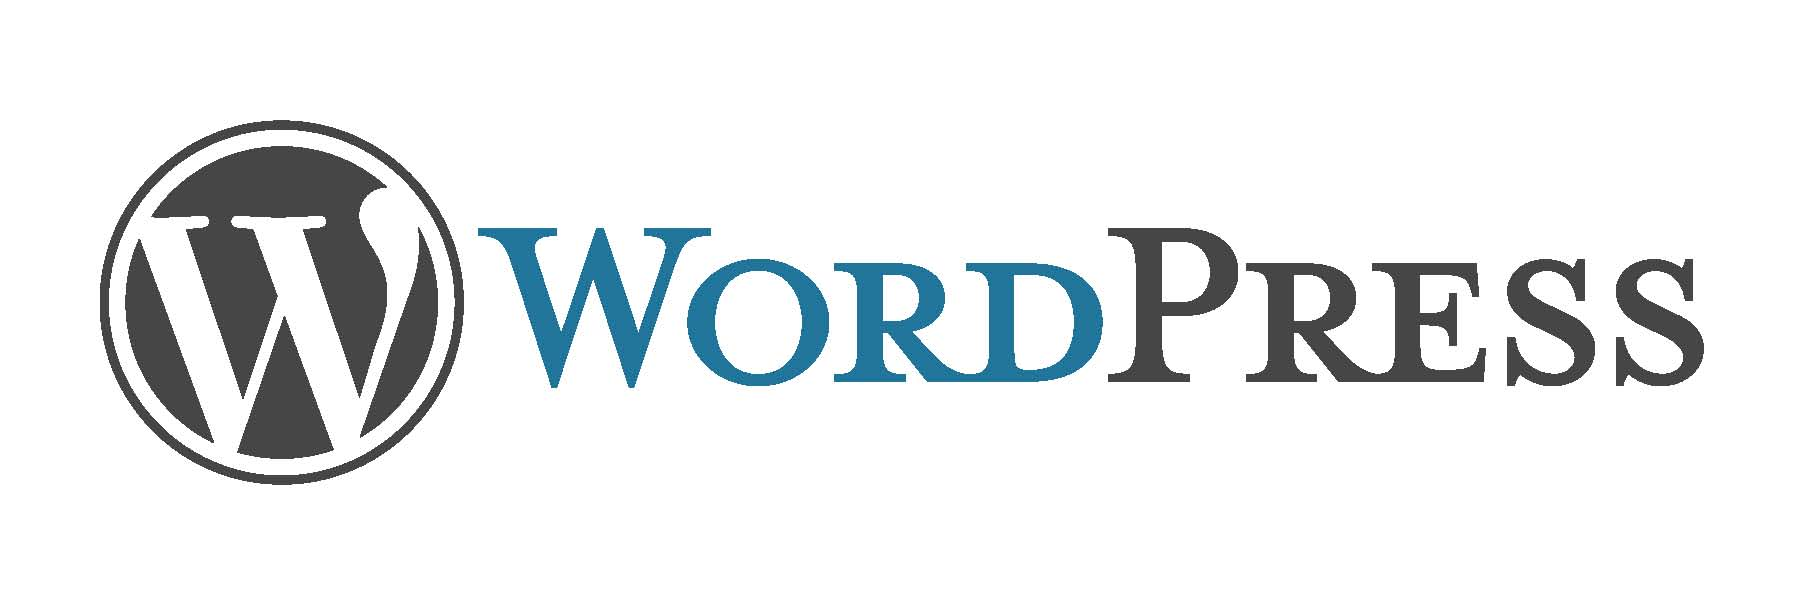 Add Parent-Page links to Breadcrumbs in WordPress